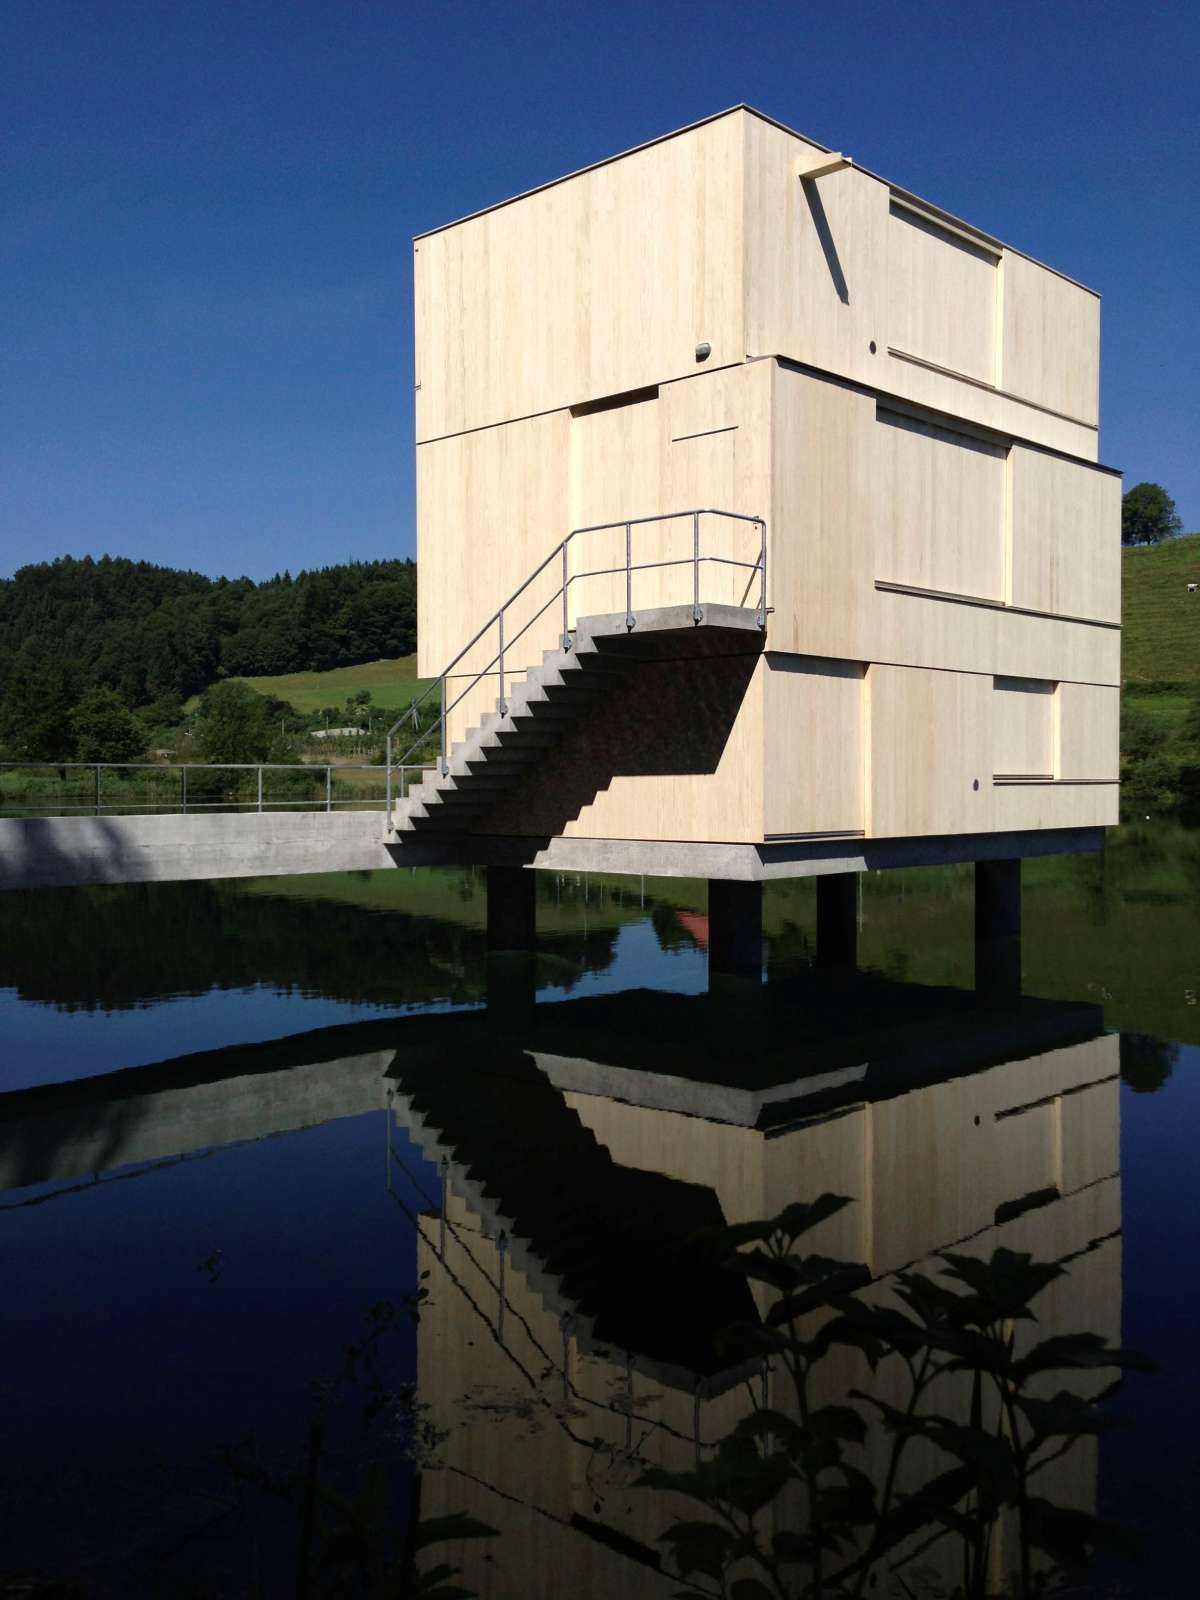 Architecture now and the future zielturm rotsee by for 03 architekten